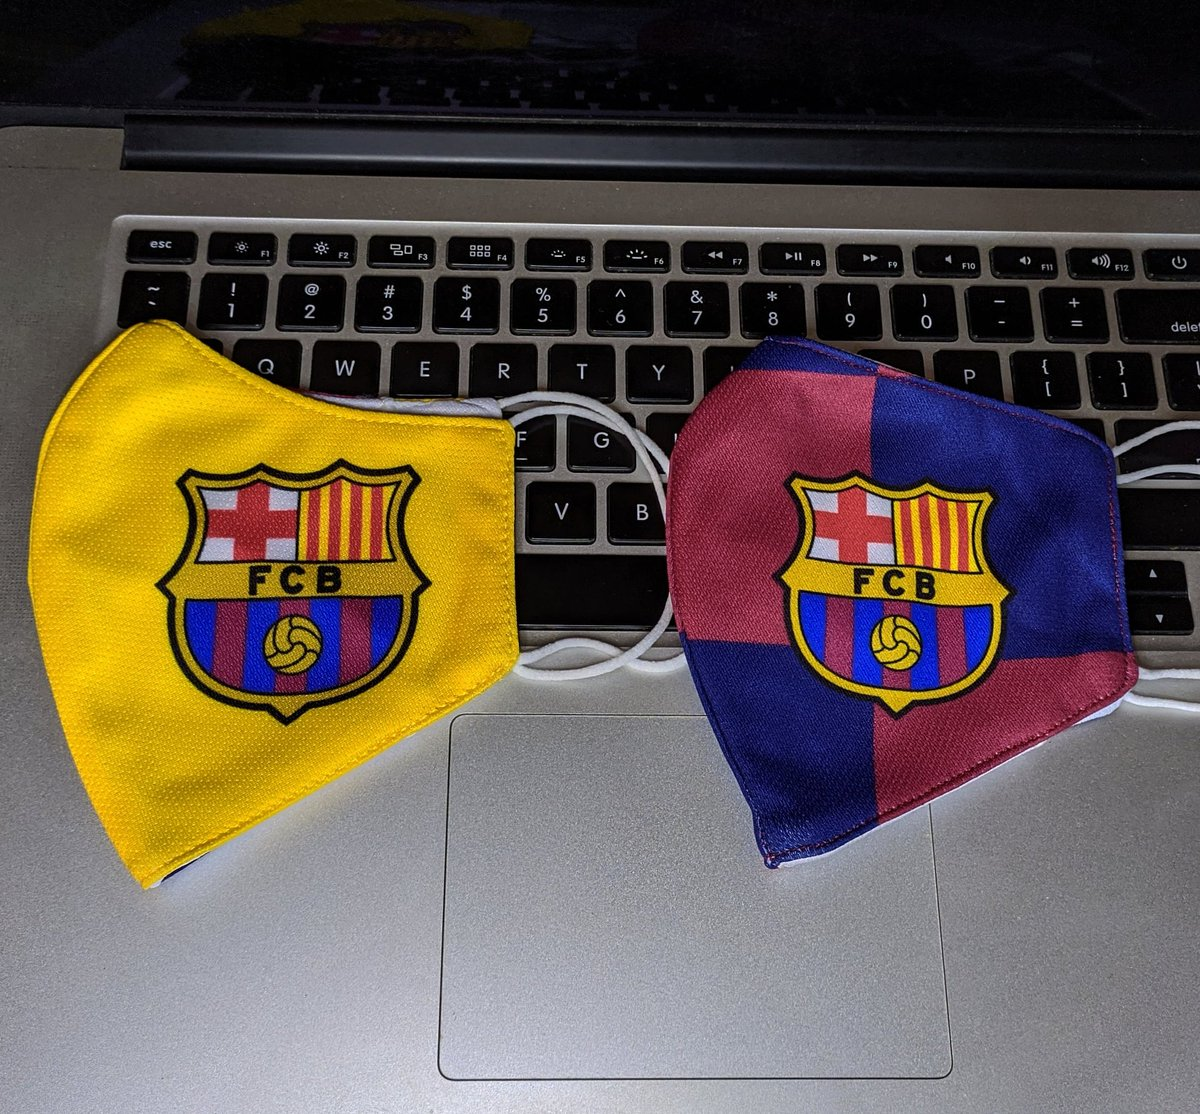 """In preparation for what would be the """"new normal""""... New fashion accessories for FCB fans like me.  #ForçaBarça #FCBarcelona https://t.co/Hl3ZlOPAiG"""